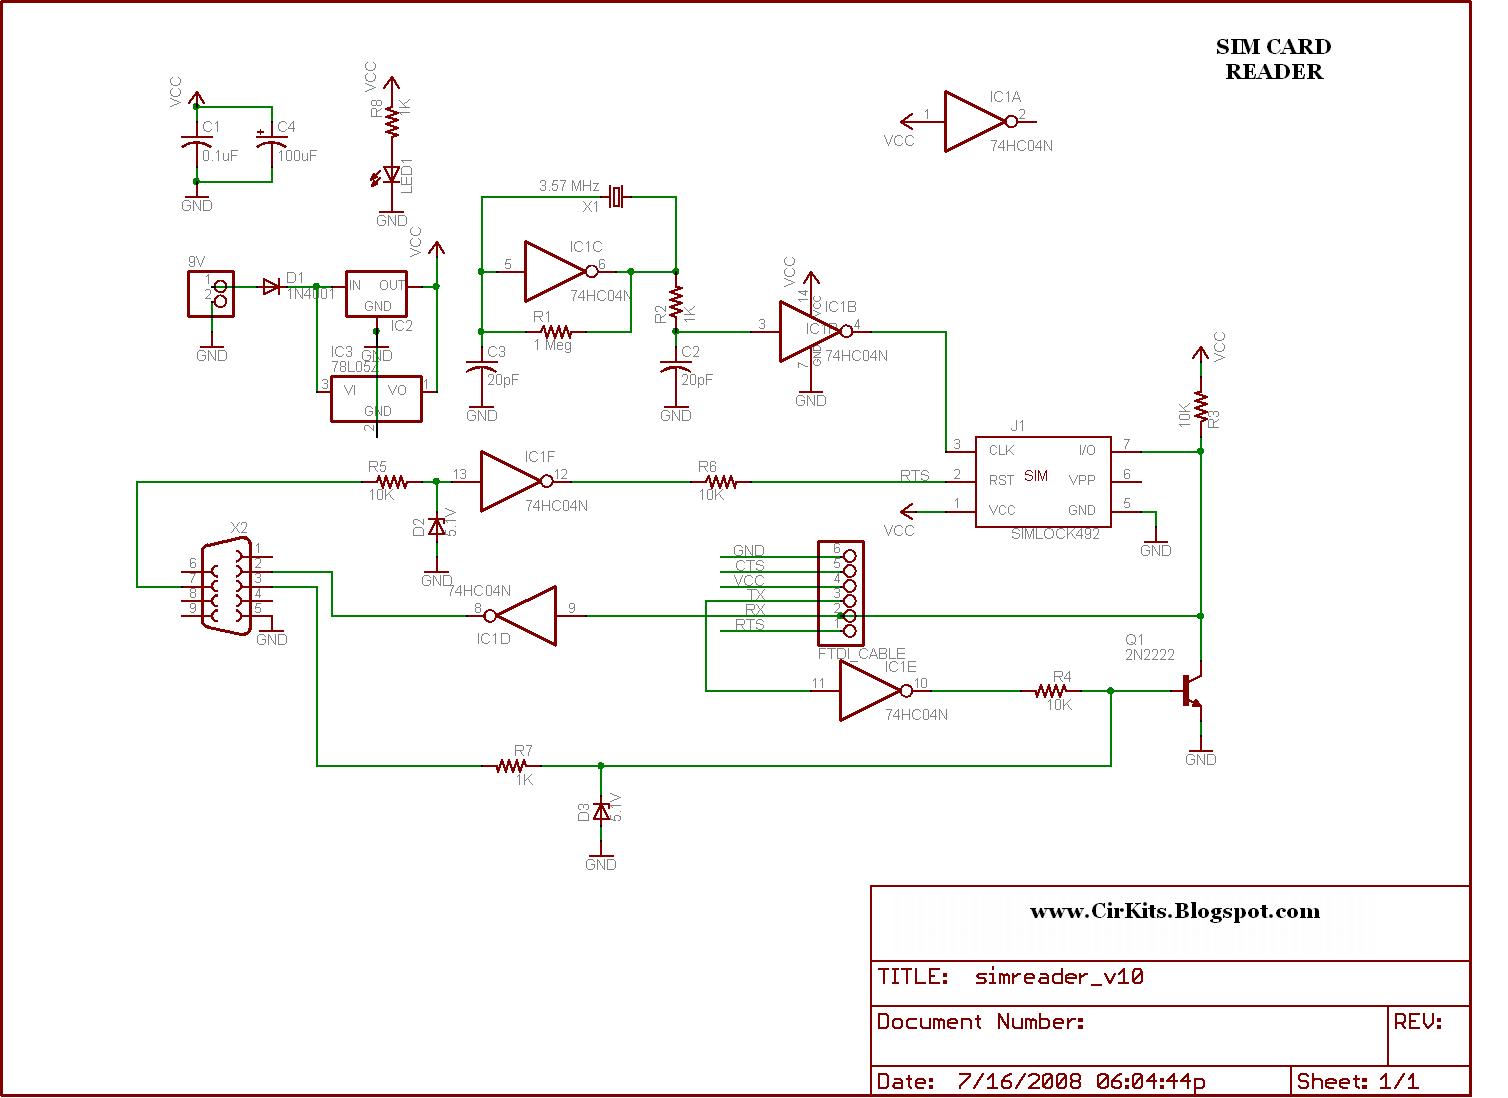 hid reader wiring diagram related keywords suggestions hid card reader door access system wiring diagram moreover sim